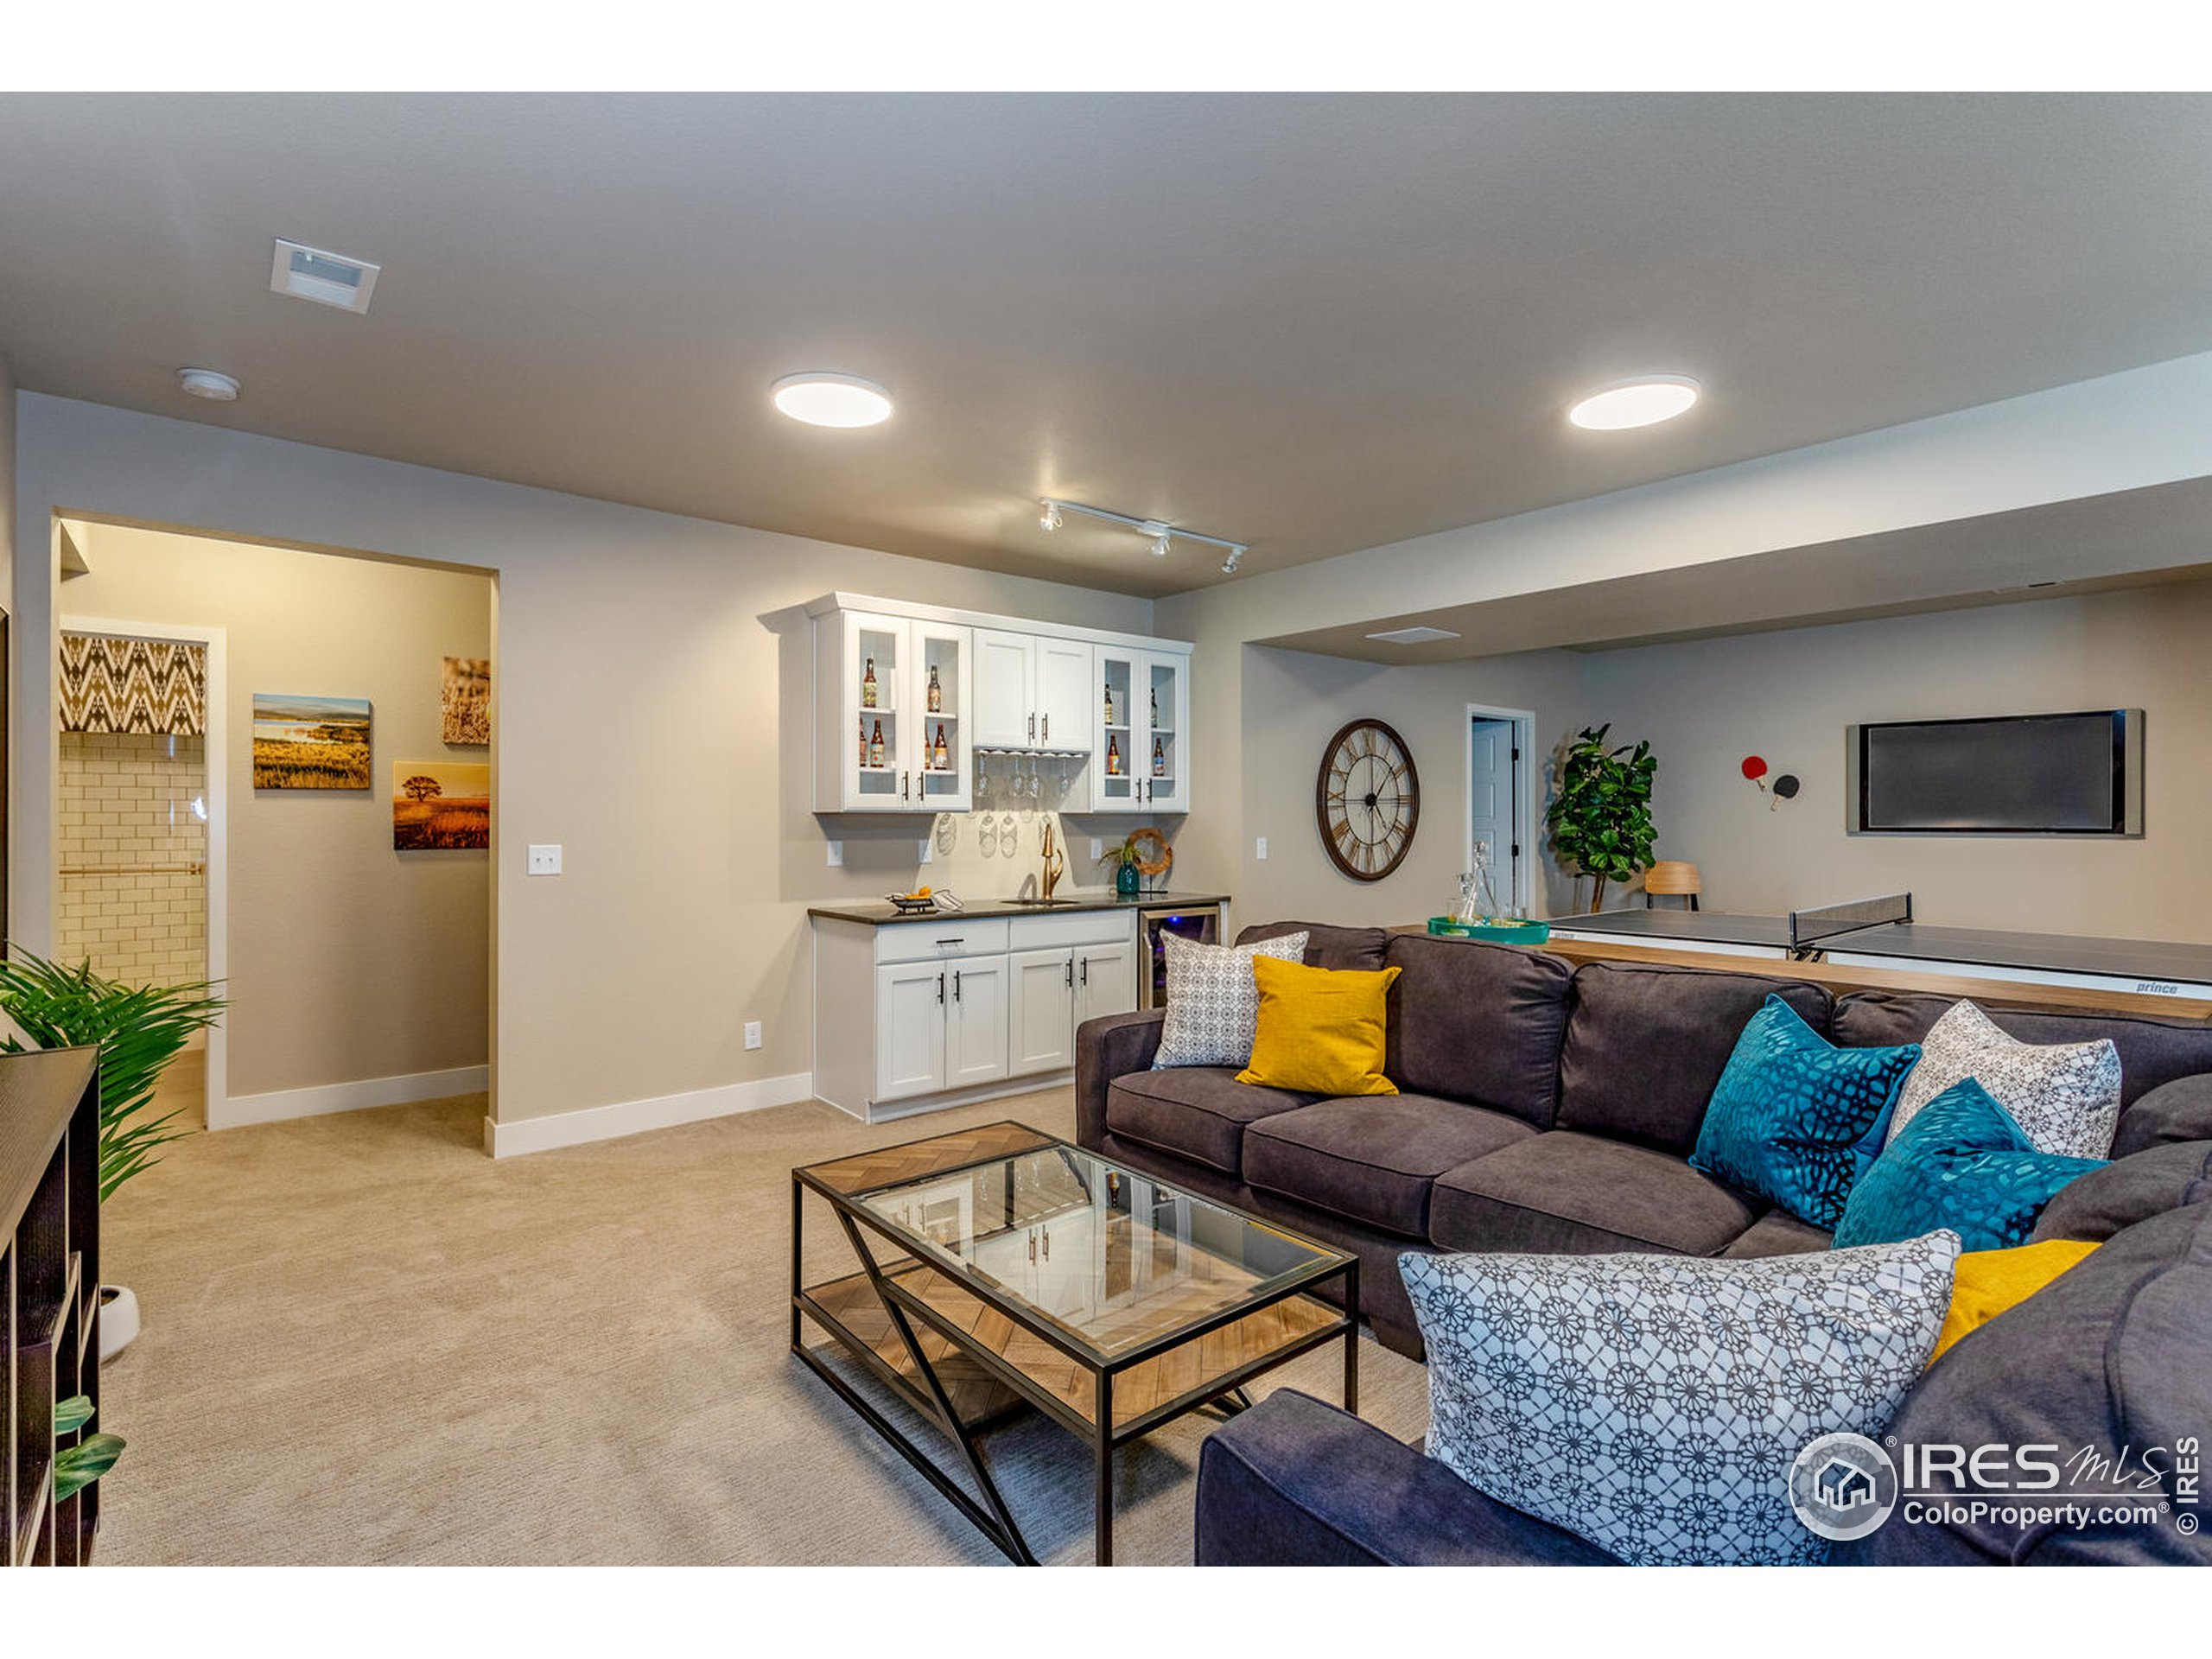 EXAMPLE PHOTO: FINISHED BASEMENT REC ROOM